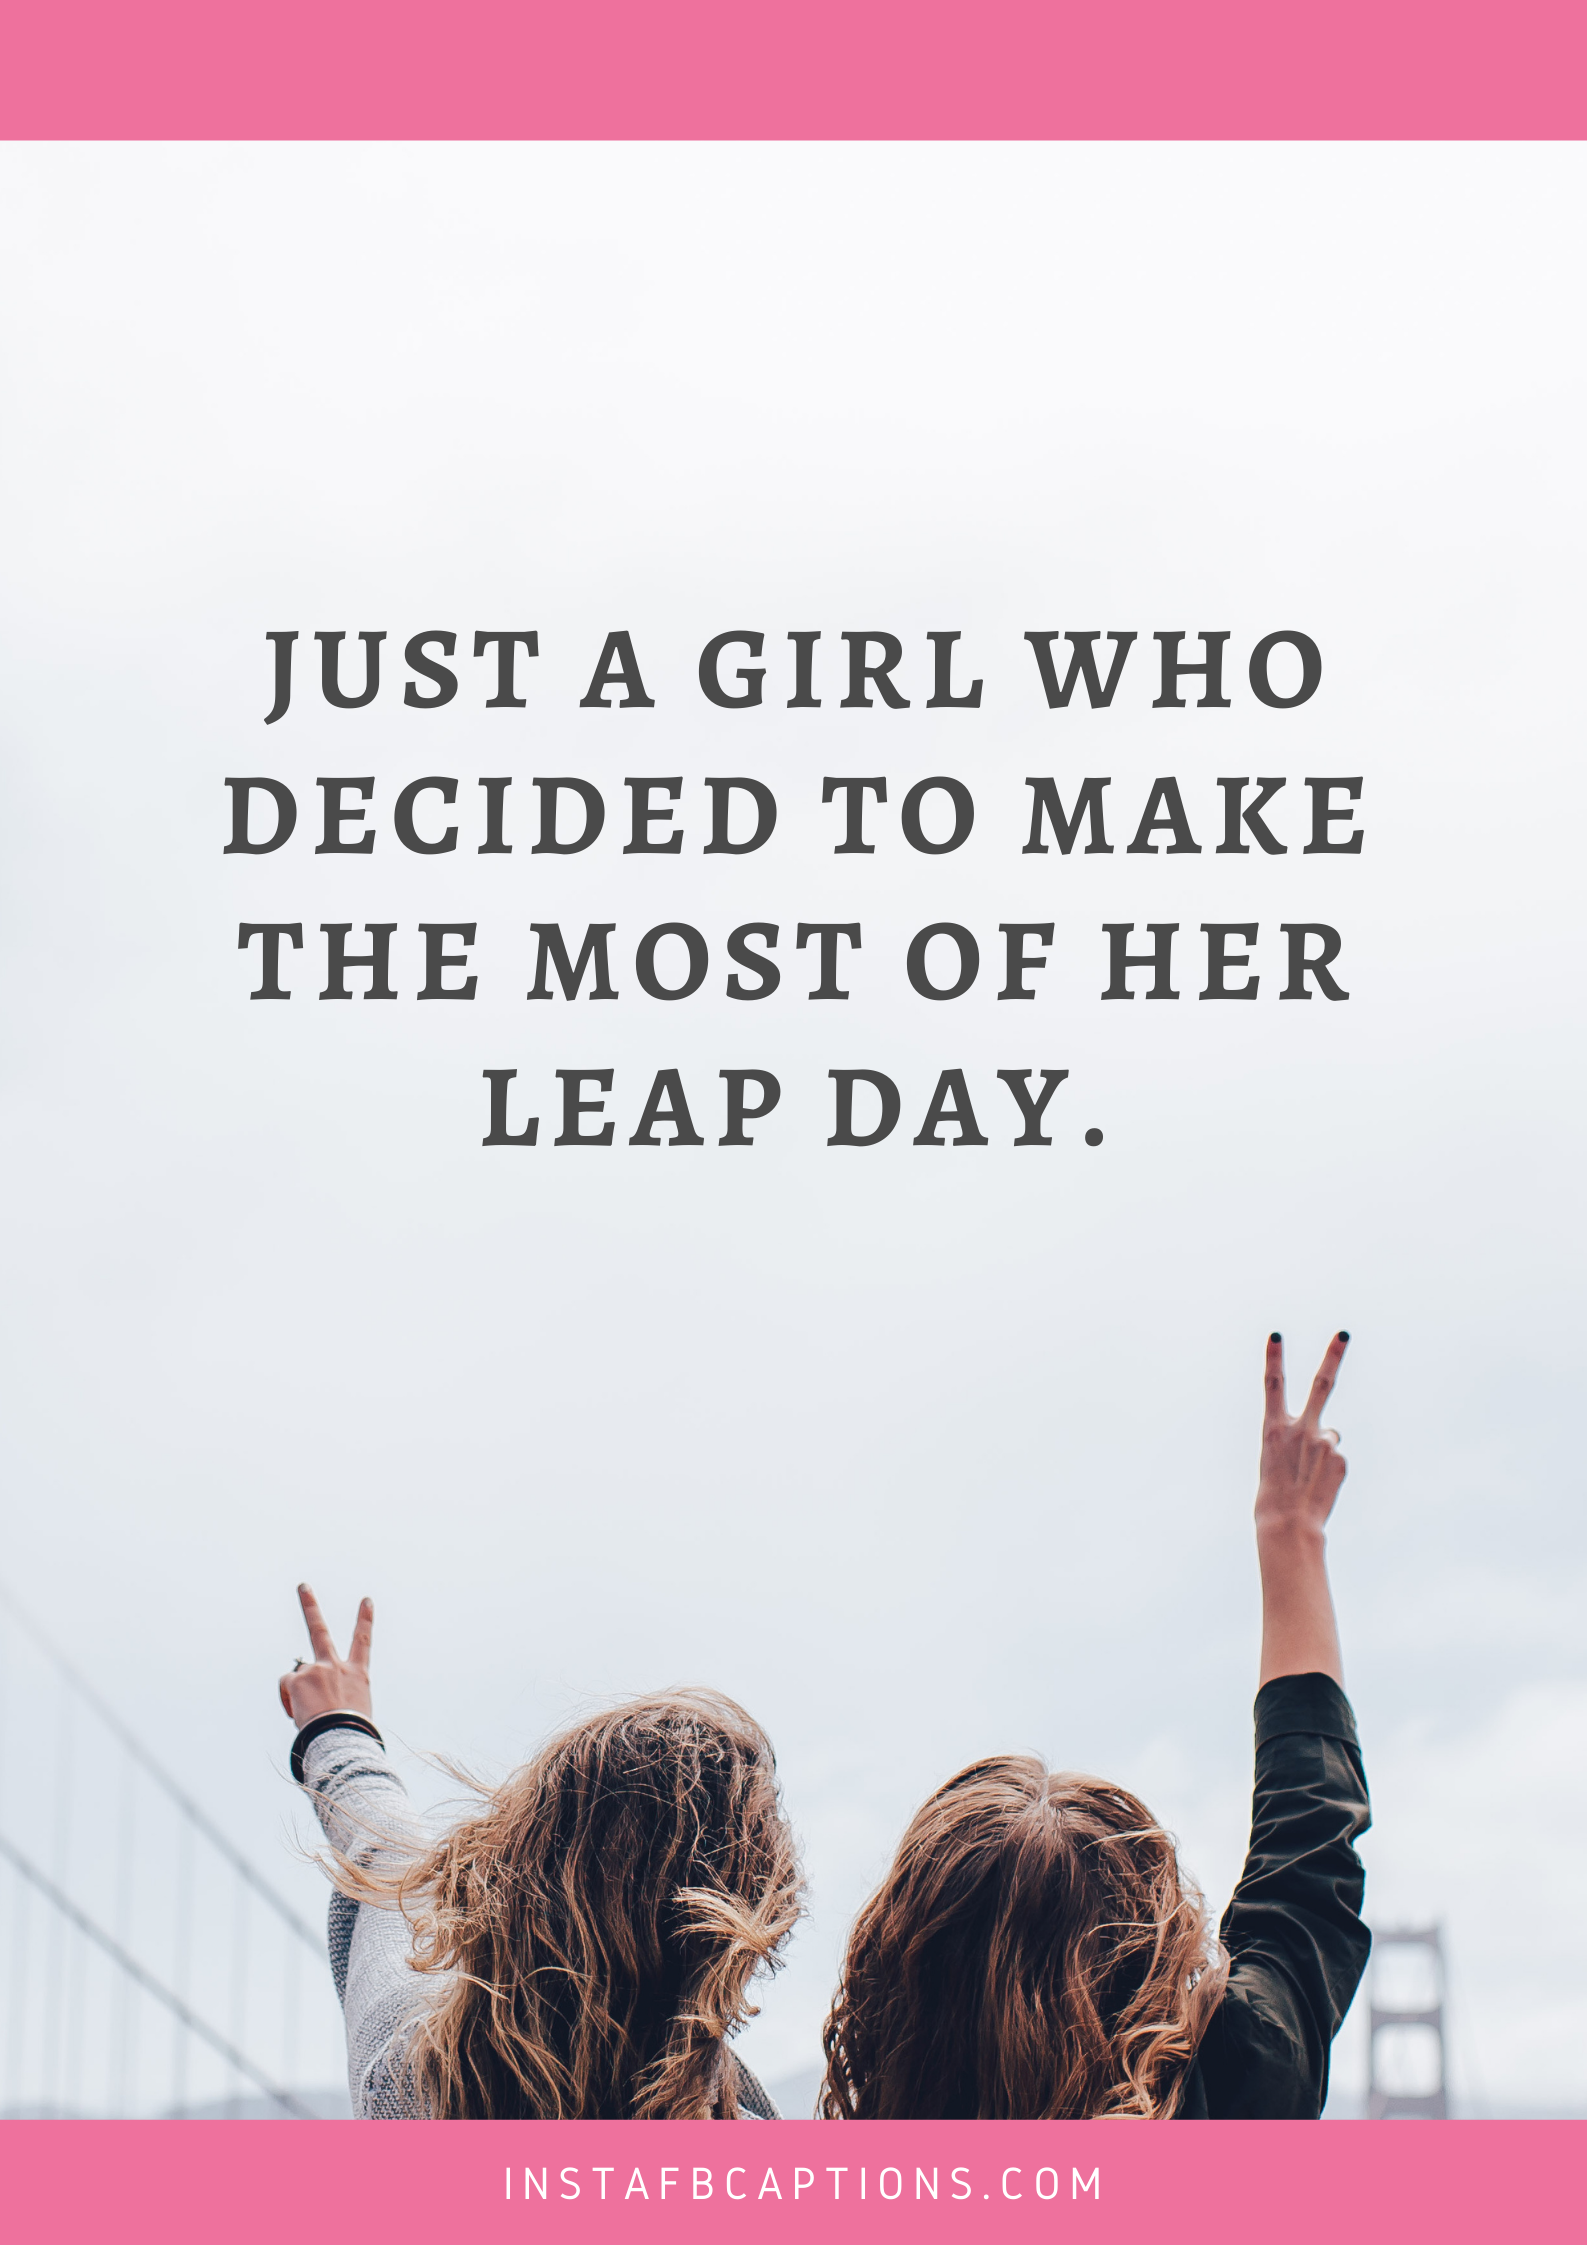 Special Leap Year Captions For Girls  - Special Leap Year Captions for Girls - 58+ LEAP YEAR Instagram Captions for Birthdays & February in 2022